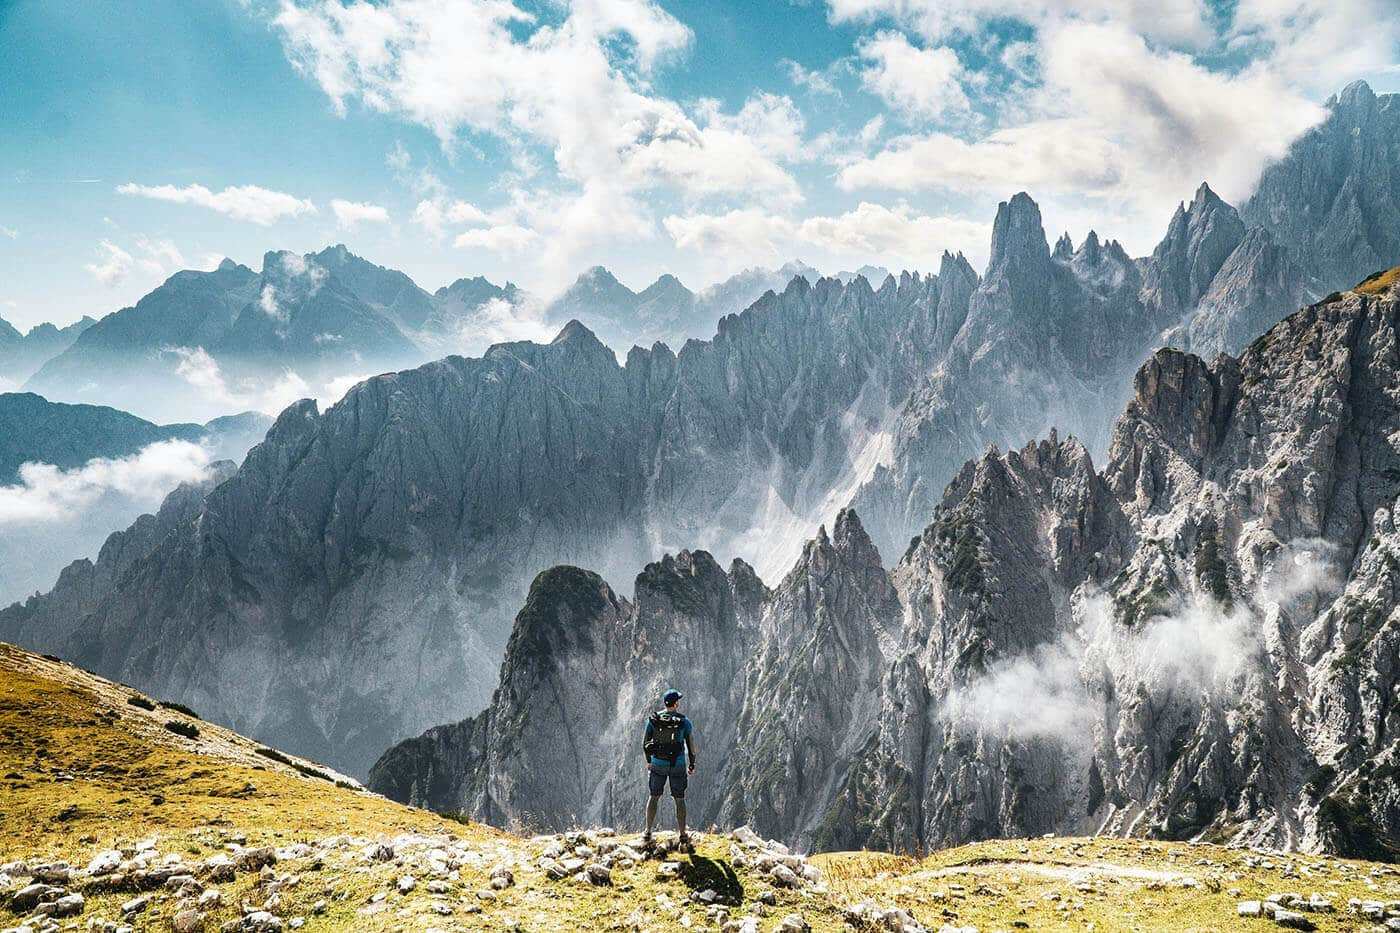 Adventure Mountain Movies That'll Give You an Adrenaline-Rush